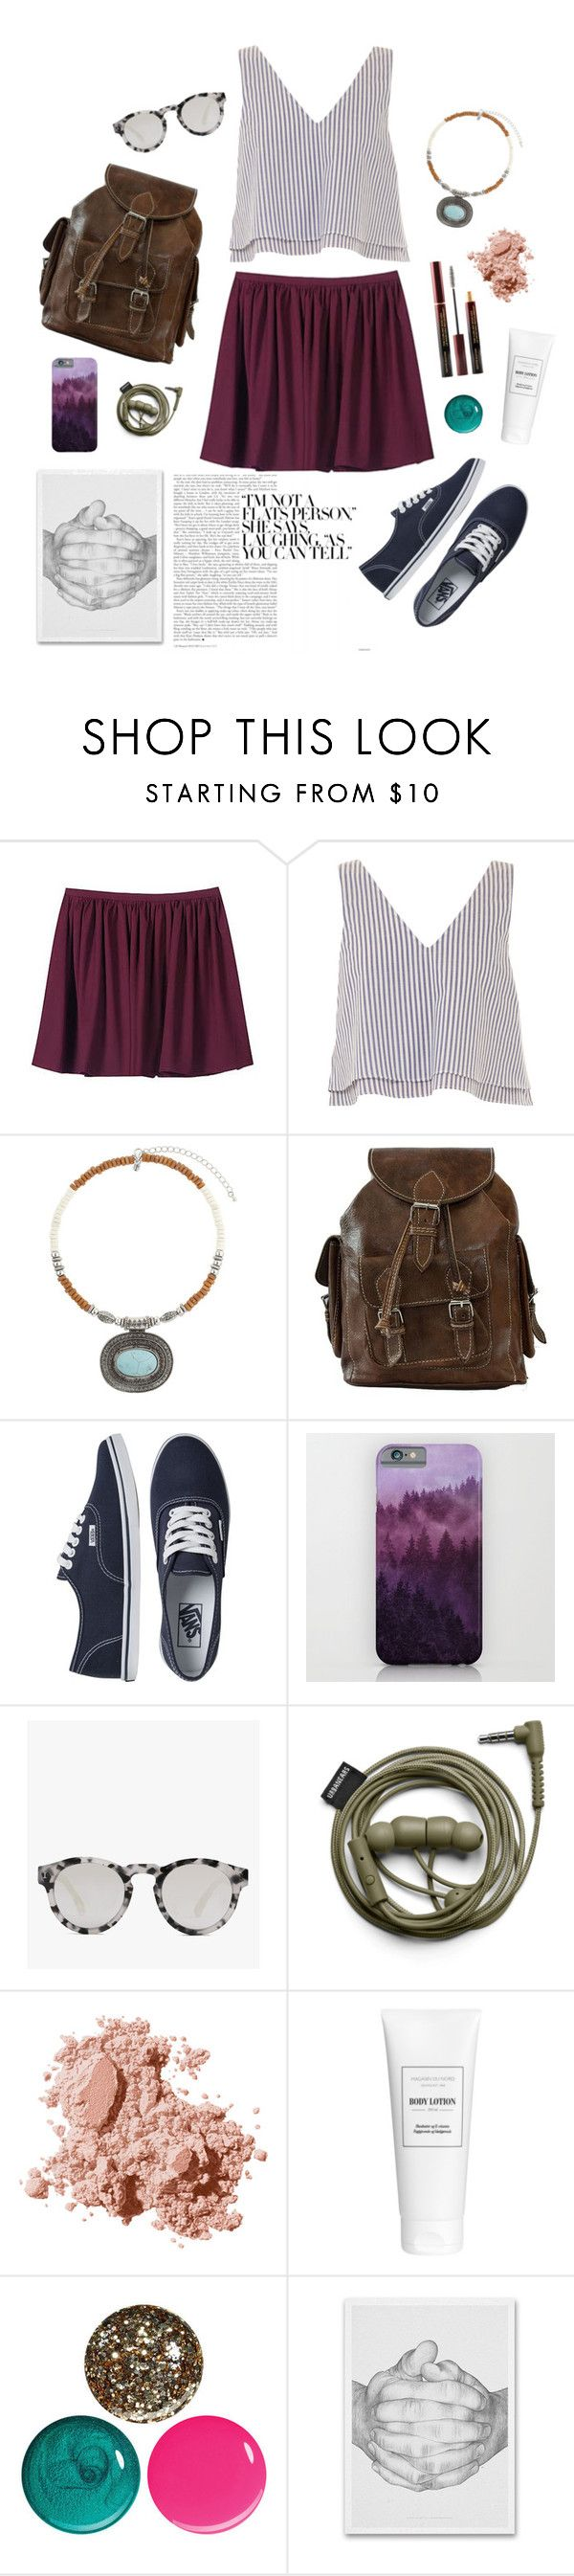 """""""Multilove"""" by lila-pauser ❤ liked on Polyvore featuring Contrarian, Apiece Apart, Miss Selfridge, Vans, Illesteva, Bobbi Brown Cosmetics and Urban Decay"""